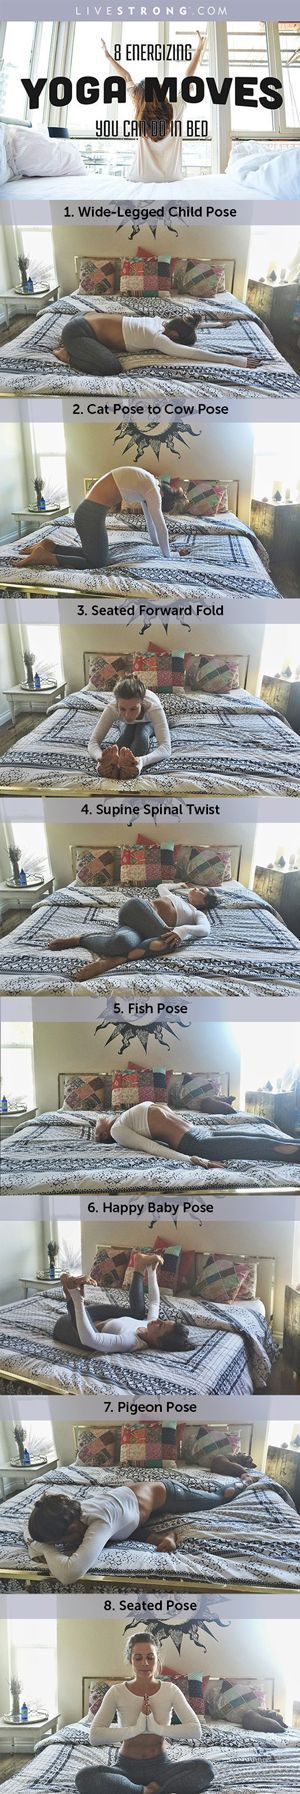 A workout that's a win-win: Philosophiemama demonstrates 8 energizing yoga moves you can do in bed. http://lvstrng.com/1LPbtqk